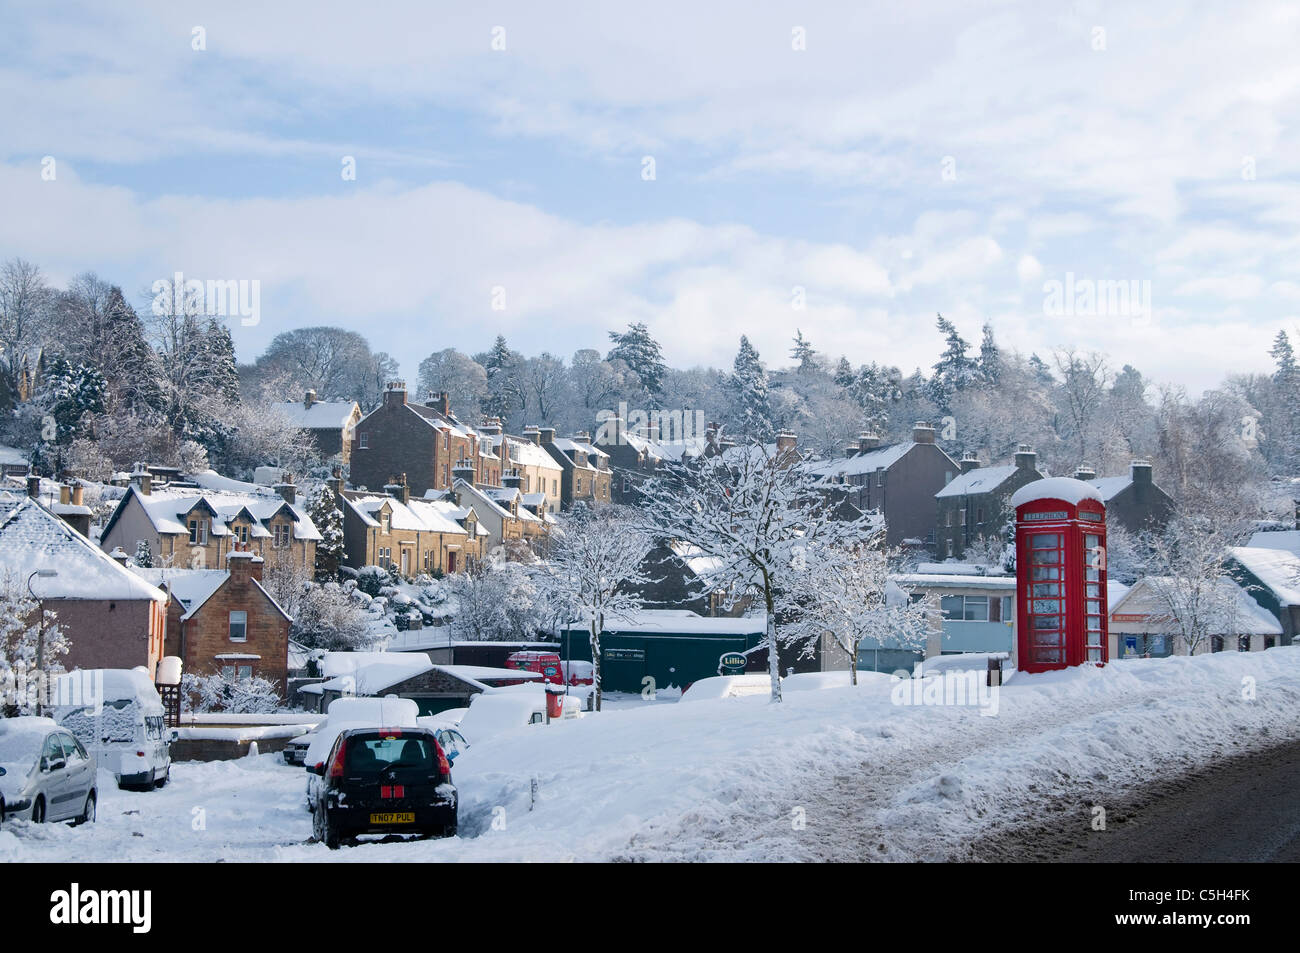 Selkirk in deep midwinter snowfall - Stock Image